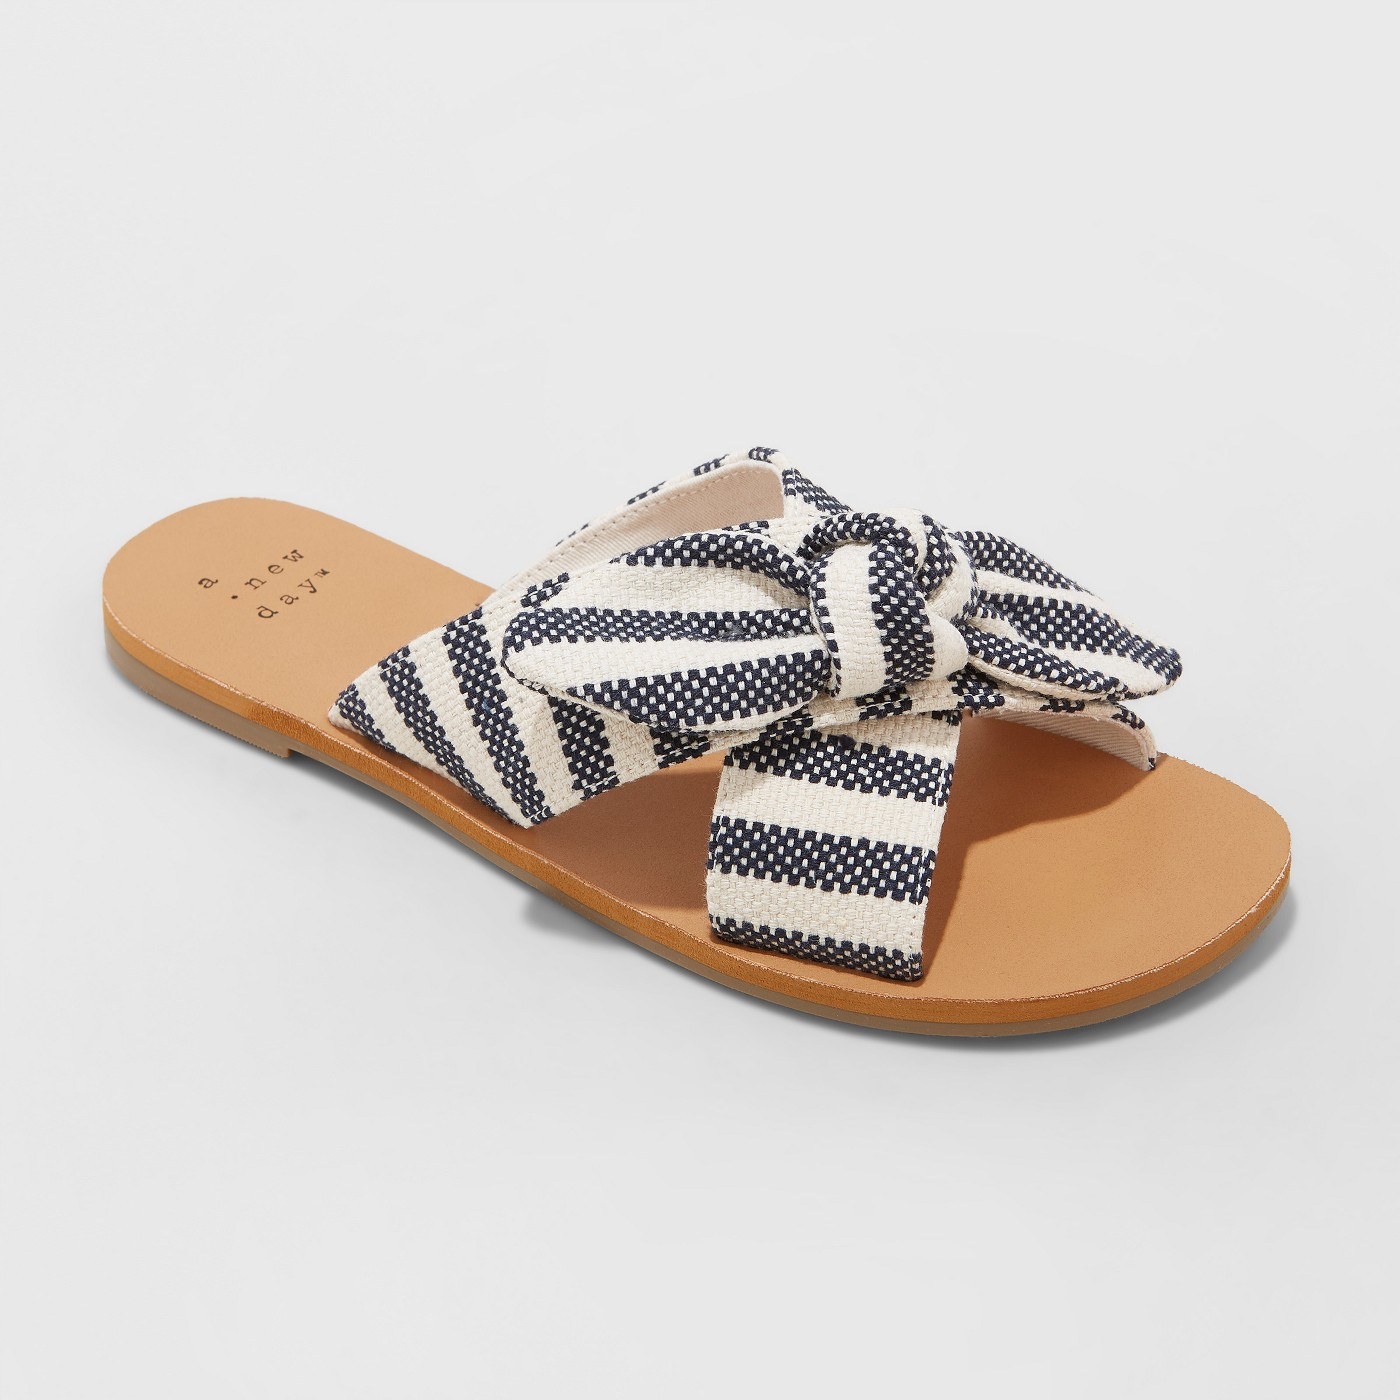 A New Day Livia Striped Knotted Bow Slide Sandals, $22.99